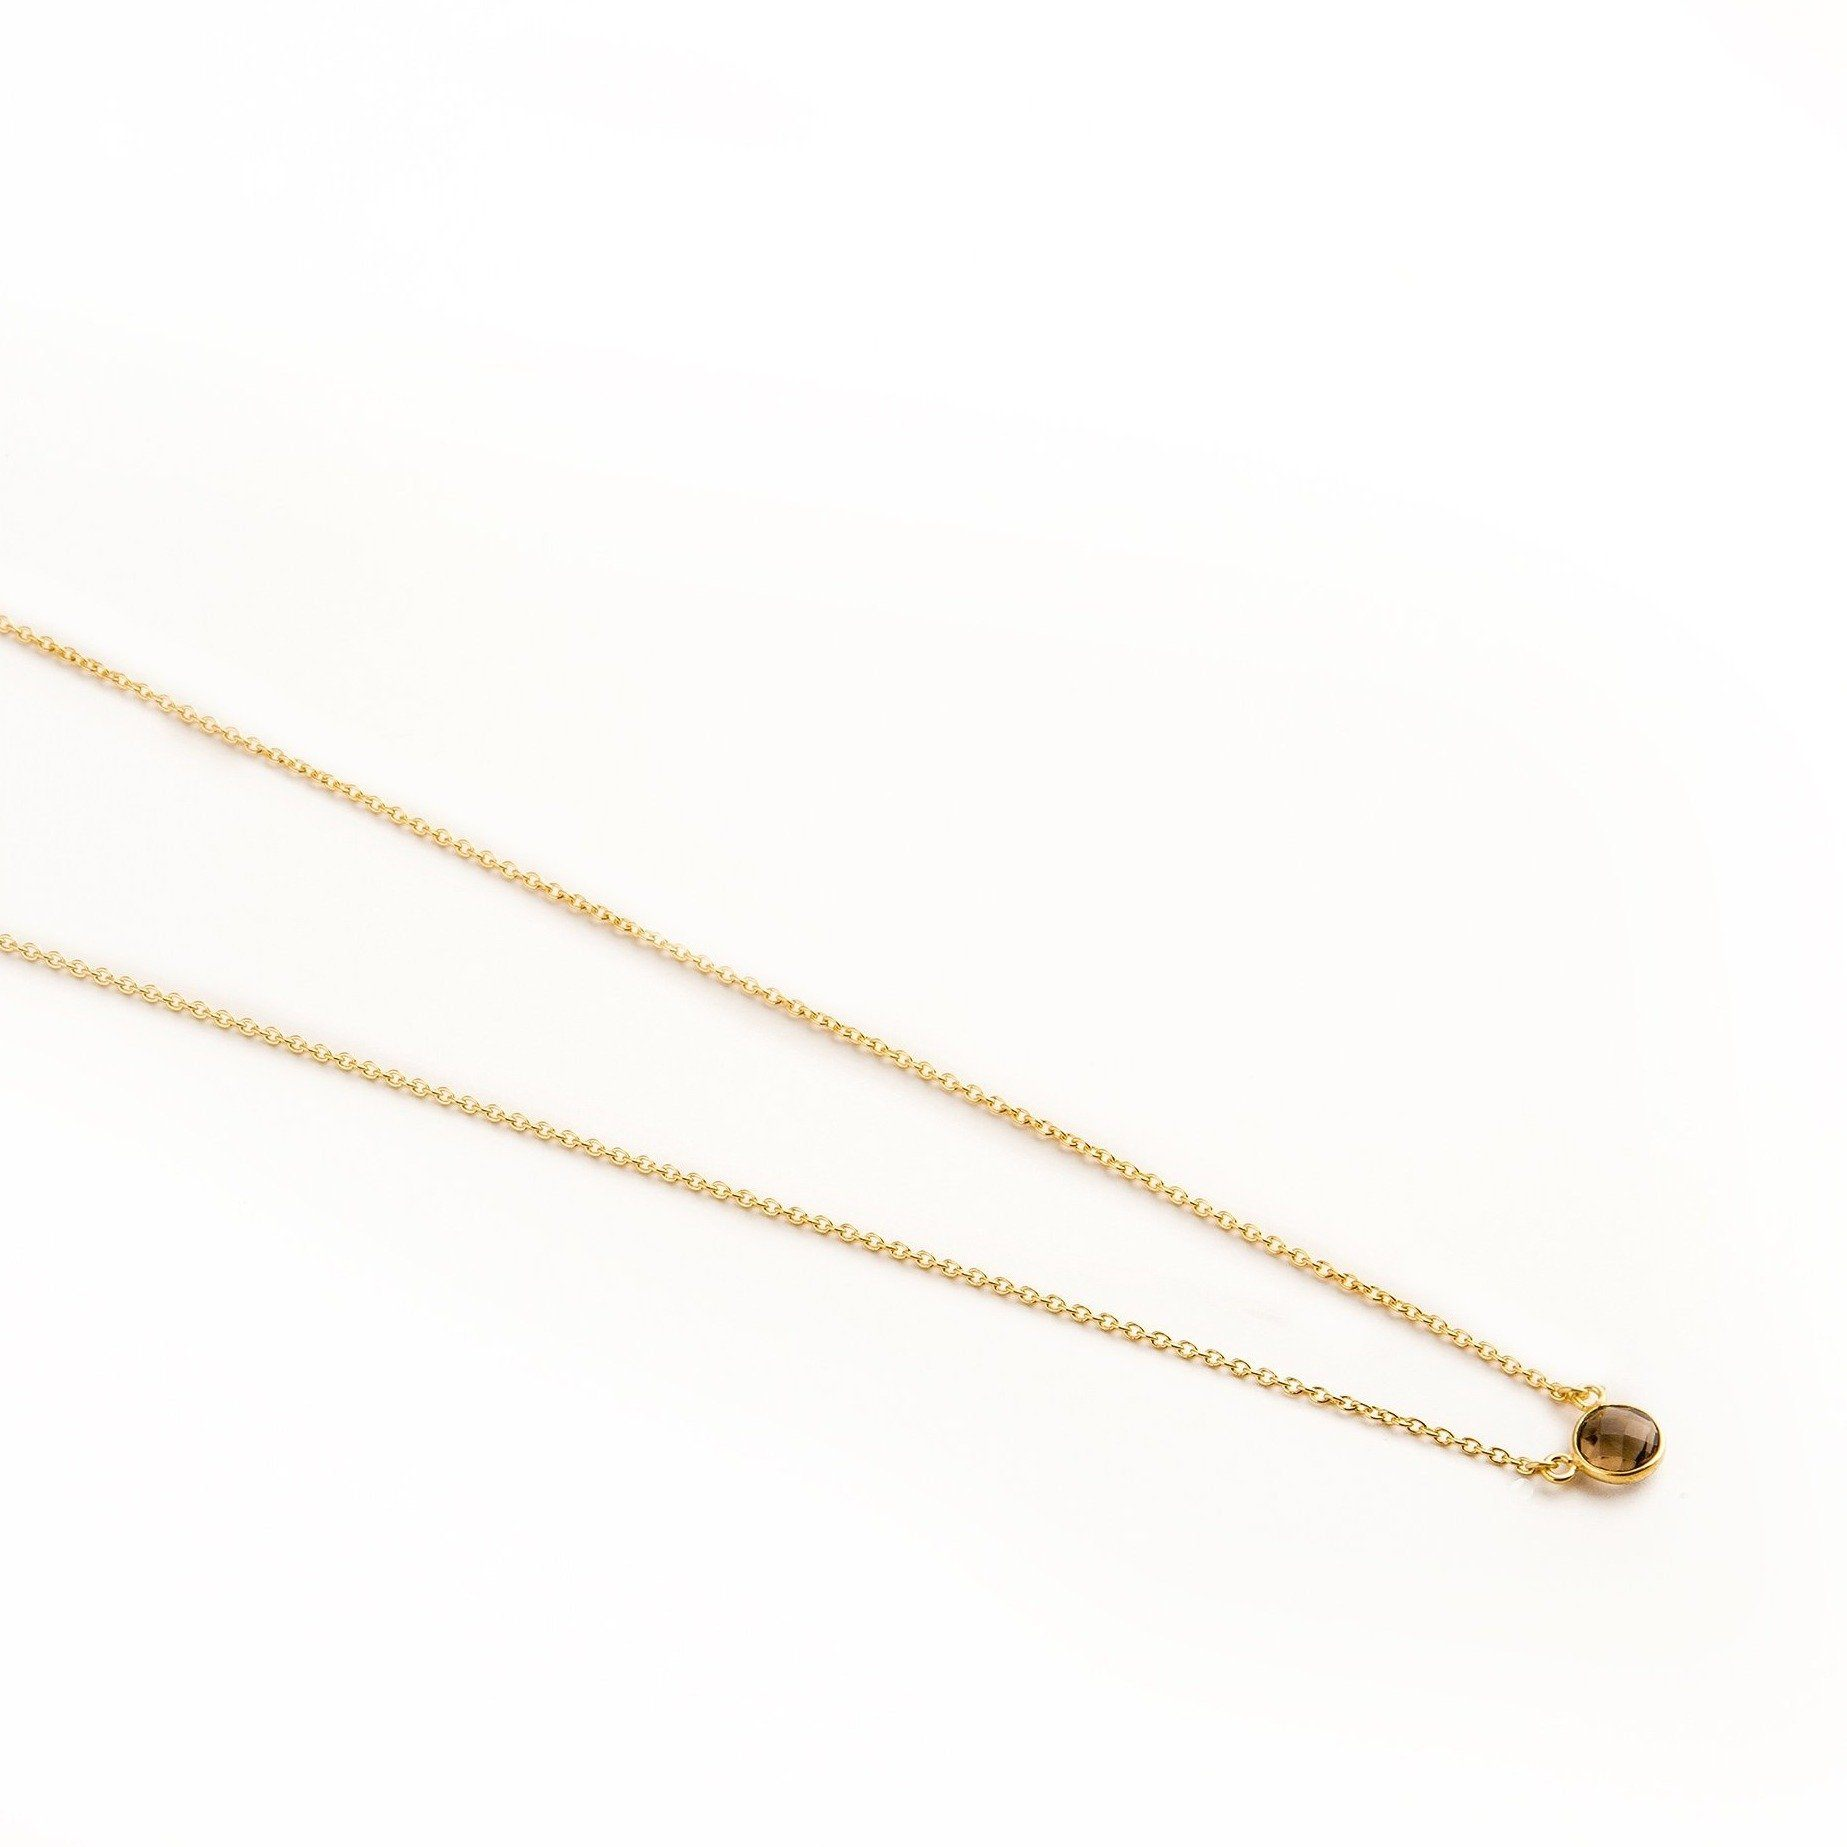 Adele mini gold-plated silver round chain in Smoky Topaz - Neckpieces